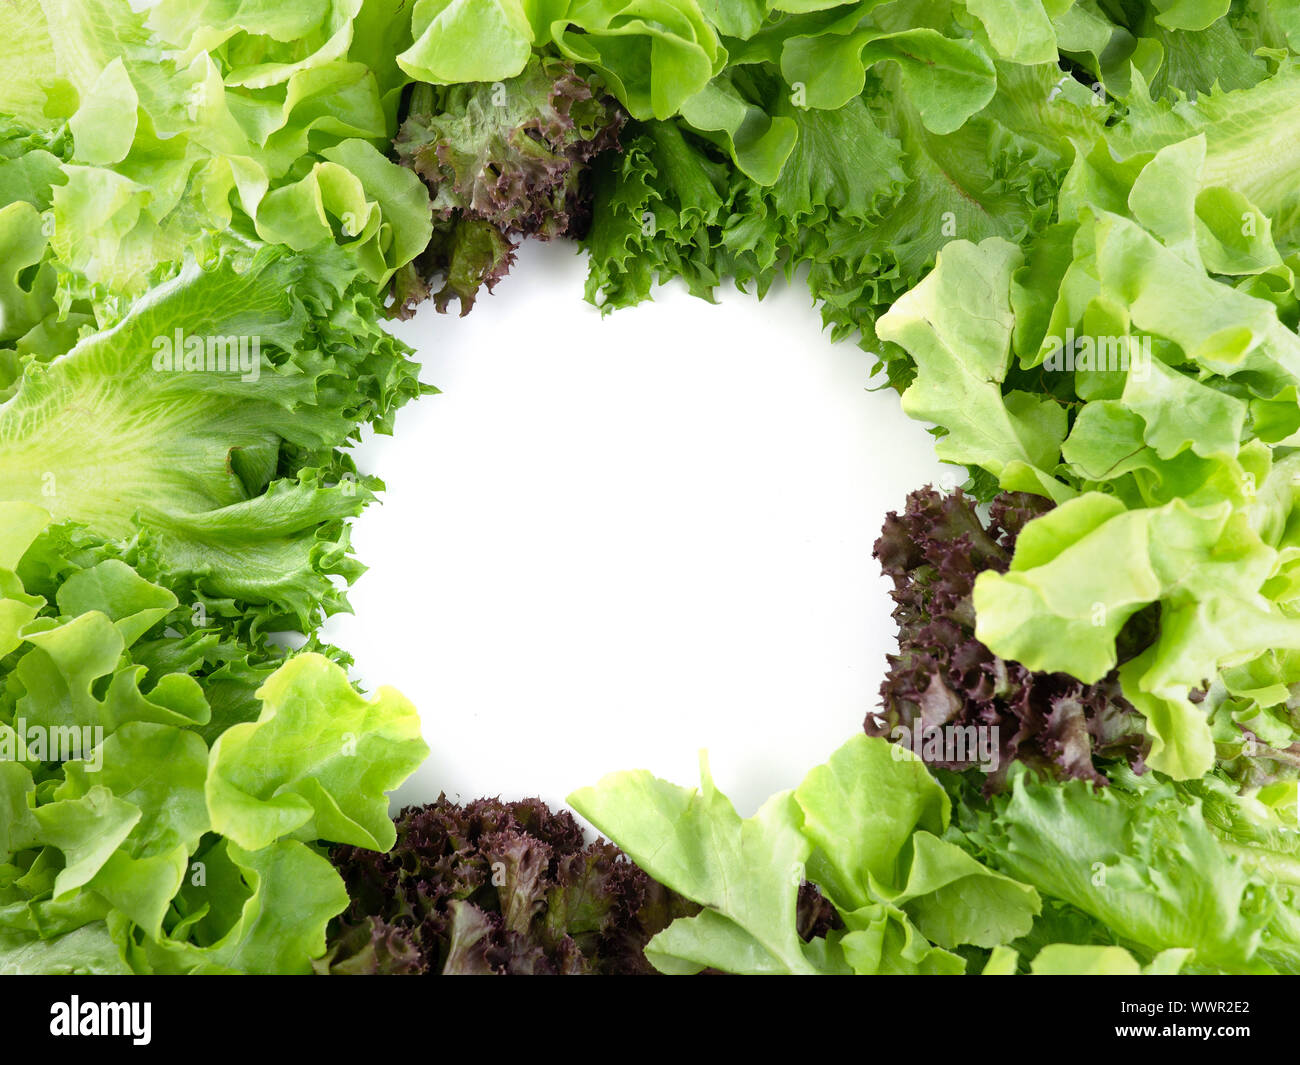 Salad leaf. Lettuce isolated on white background, Salad background for inserting text Stock Photo